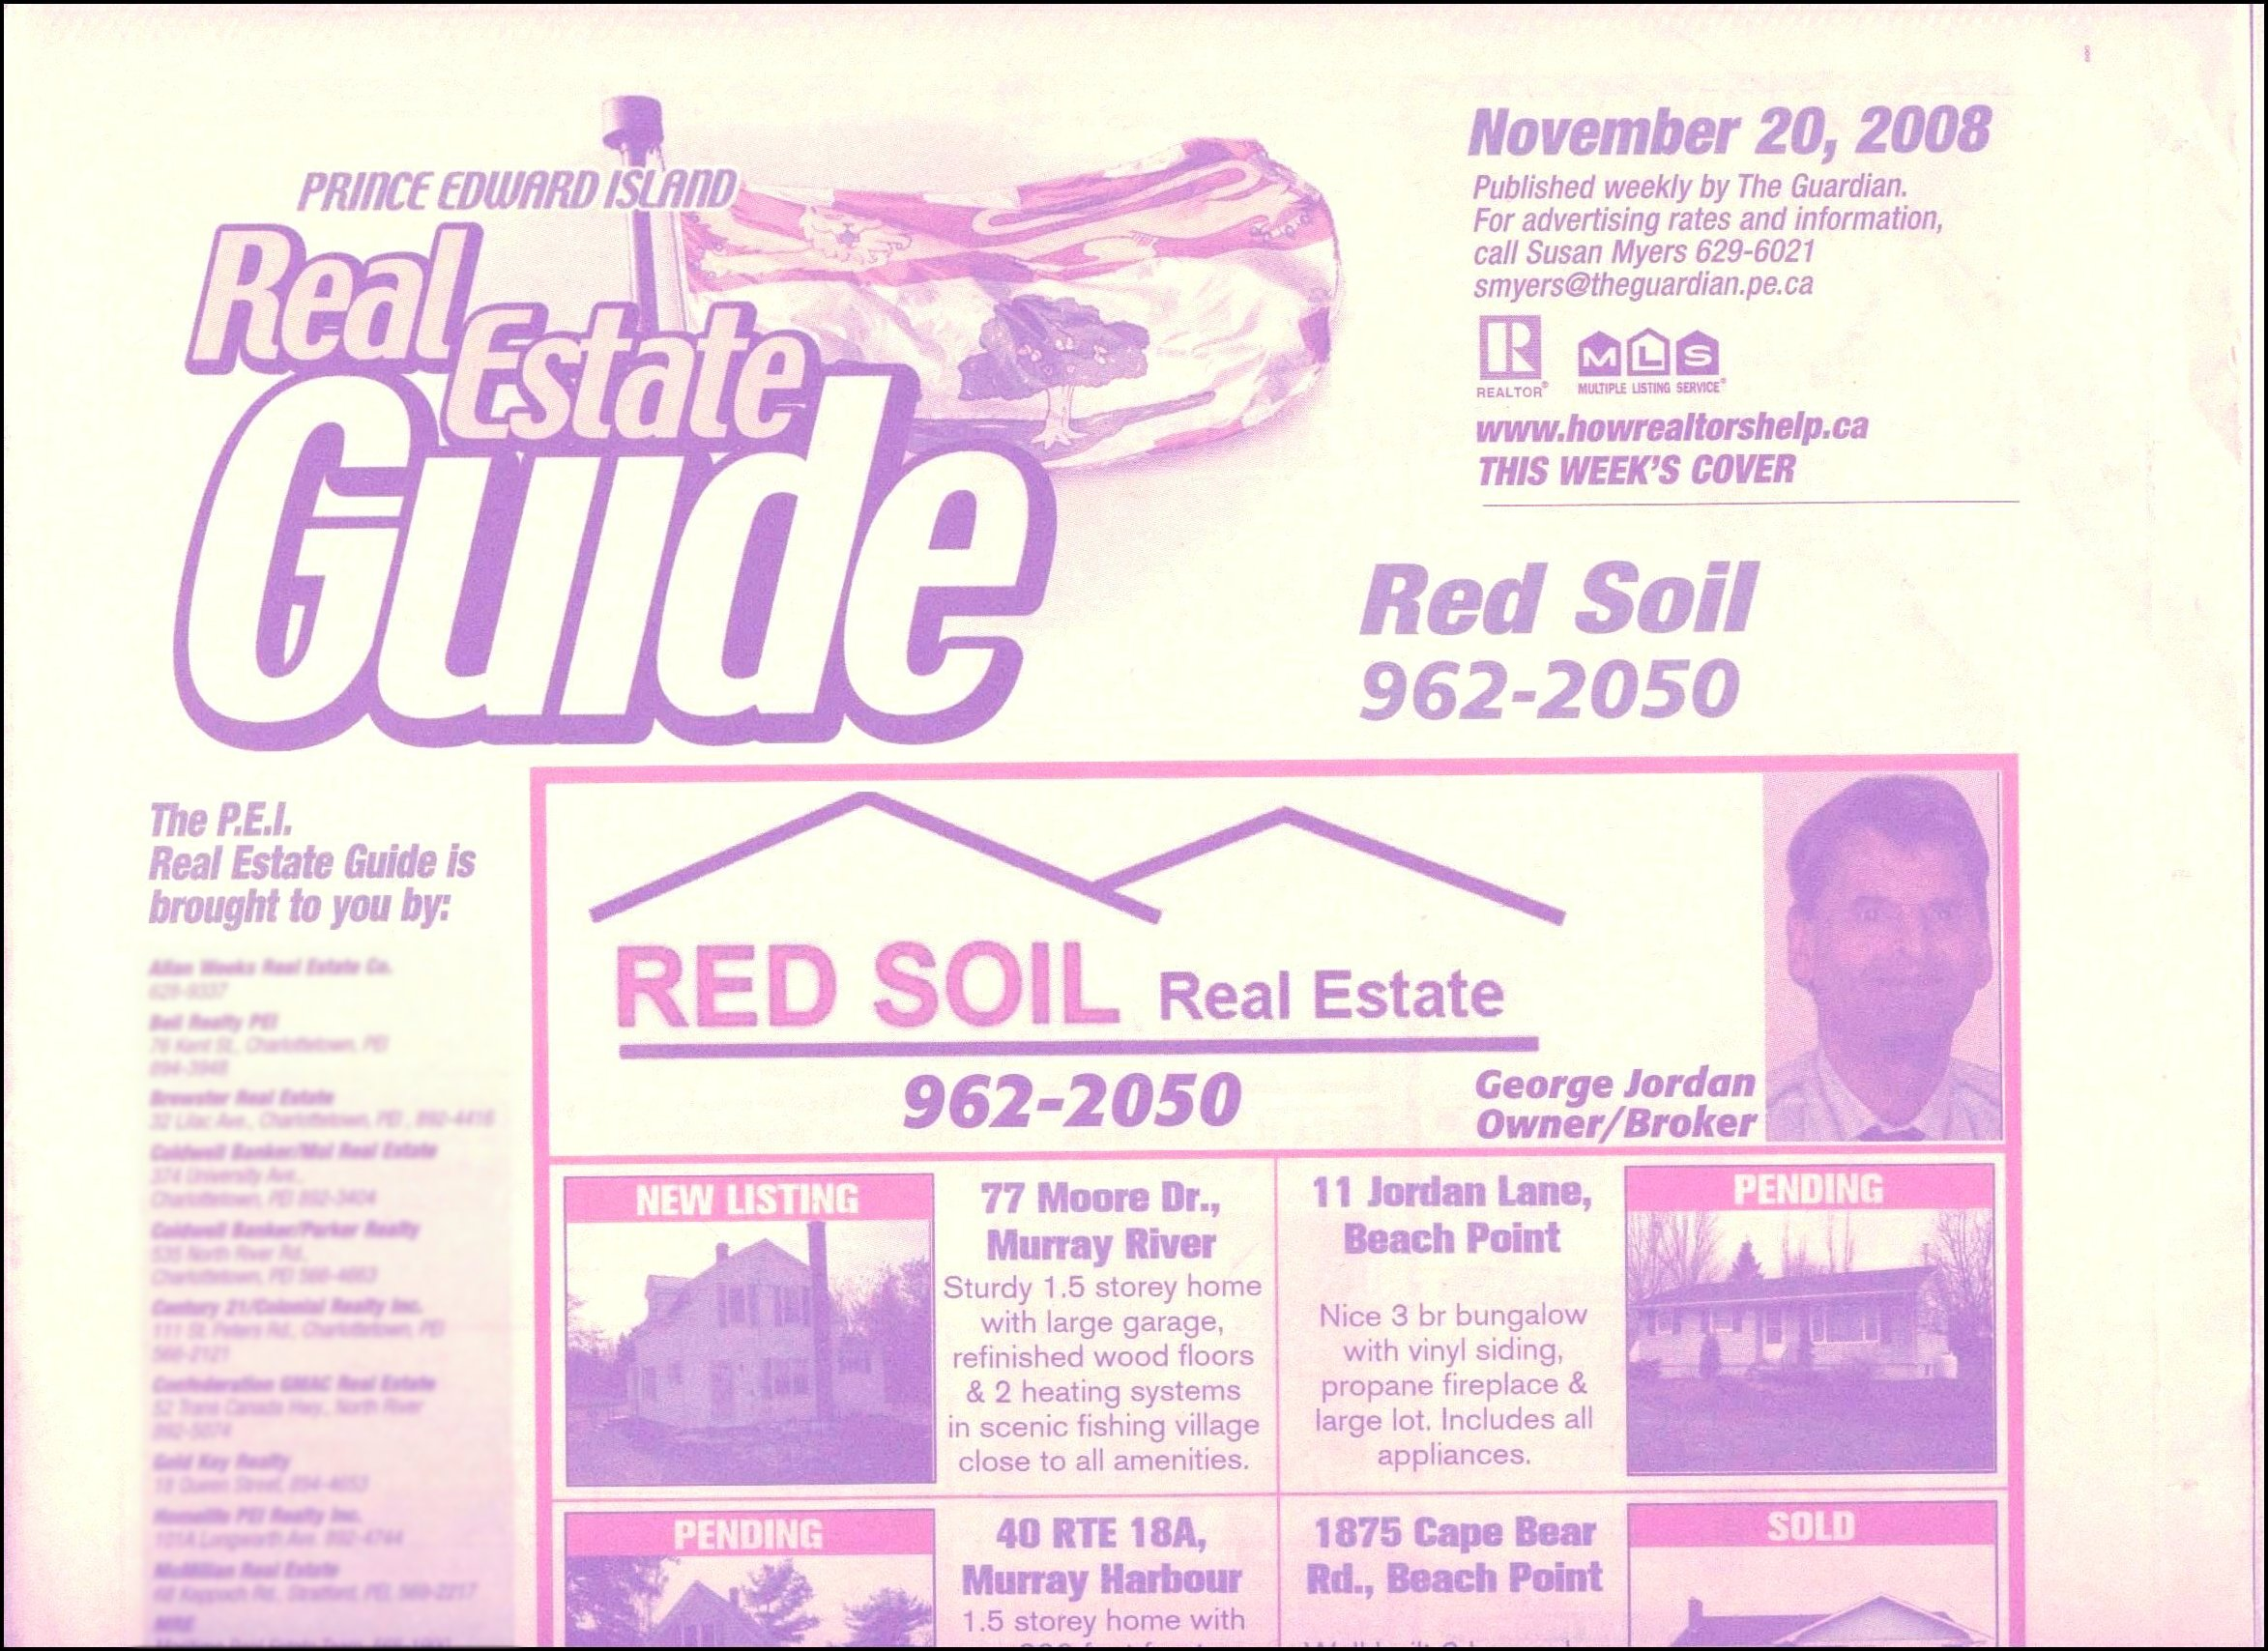 PEI Real Estate Guide